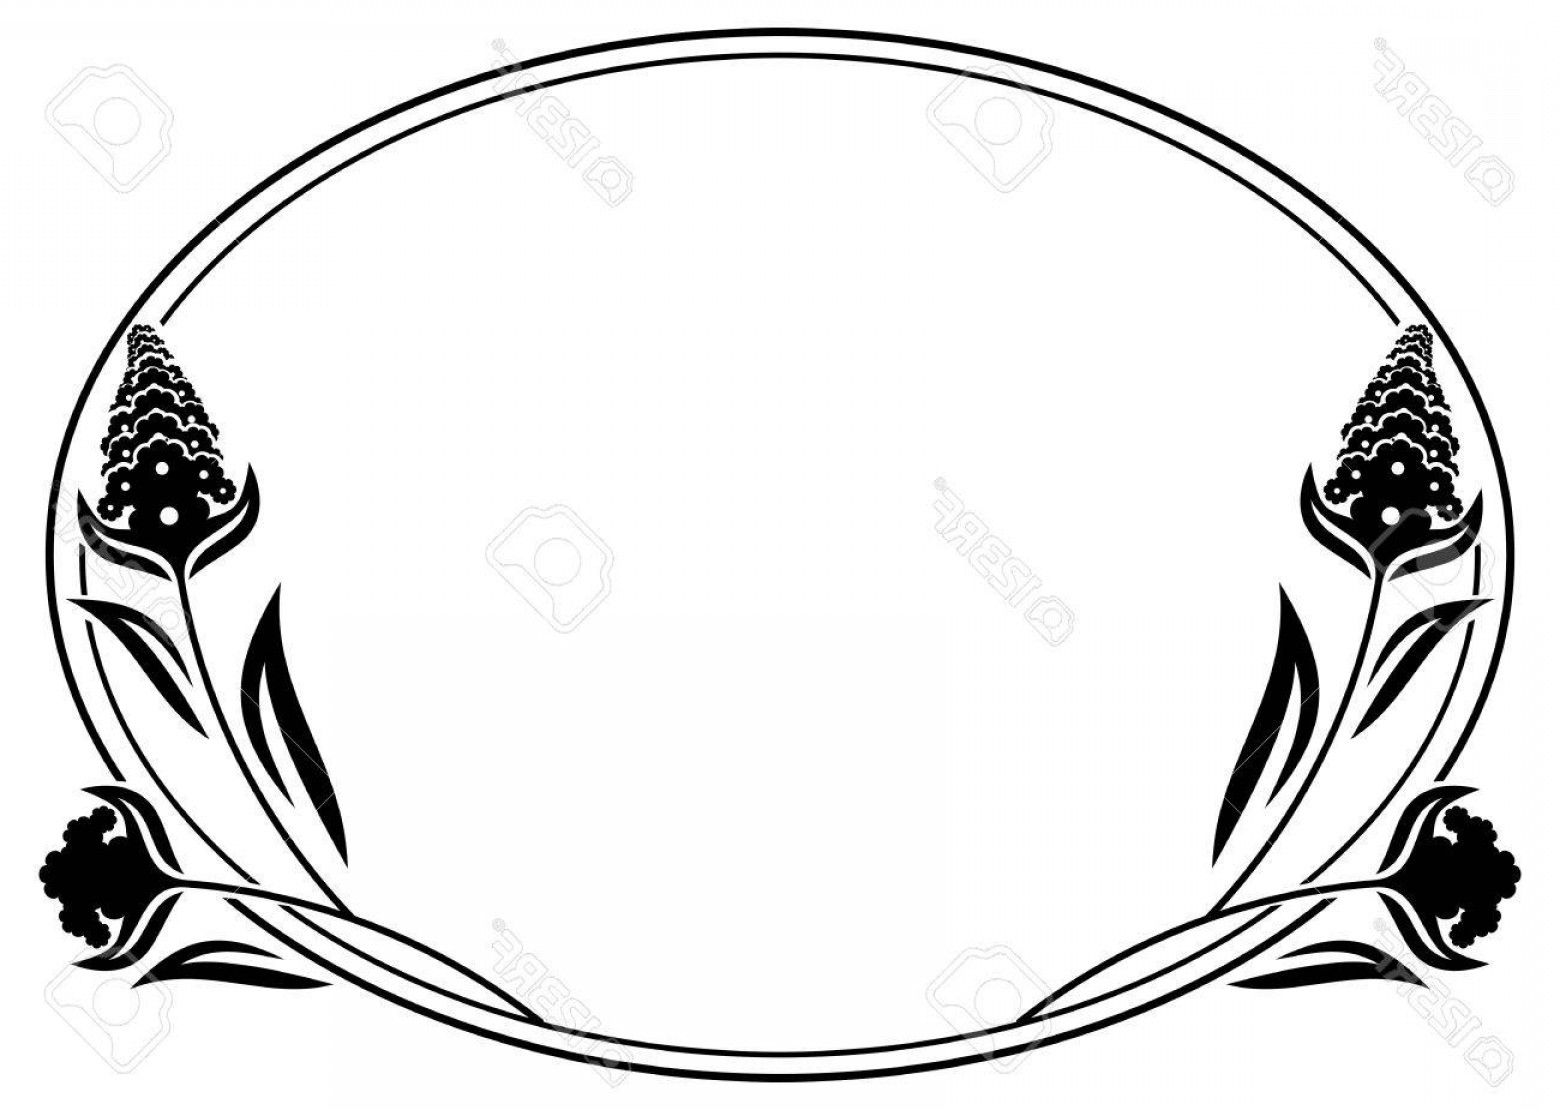 1560x1110 Photostock Vector Black And White Oval Frame With Decorative